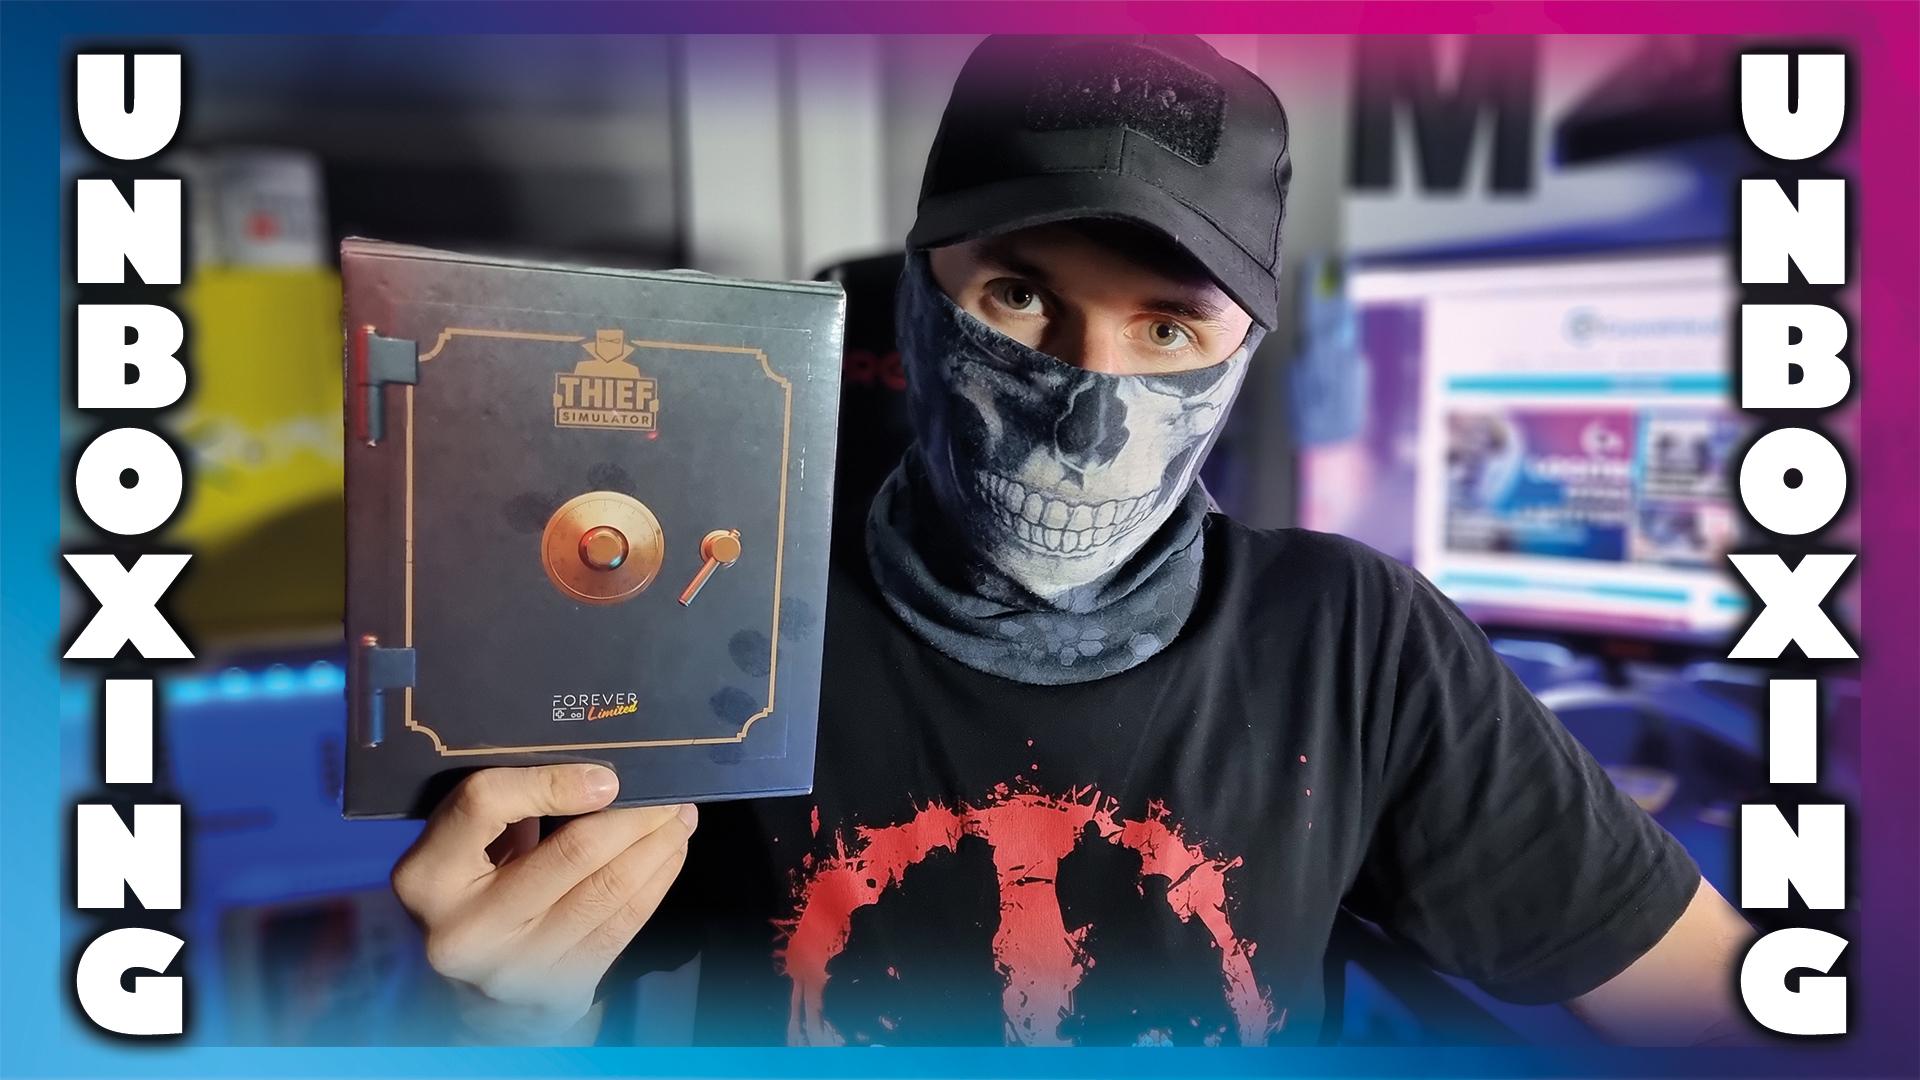 Thief Simulator Limited (Forever Limited) - UNBOXING